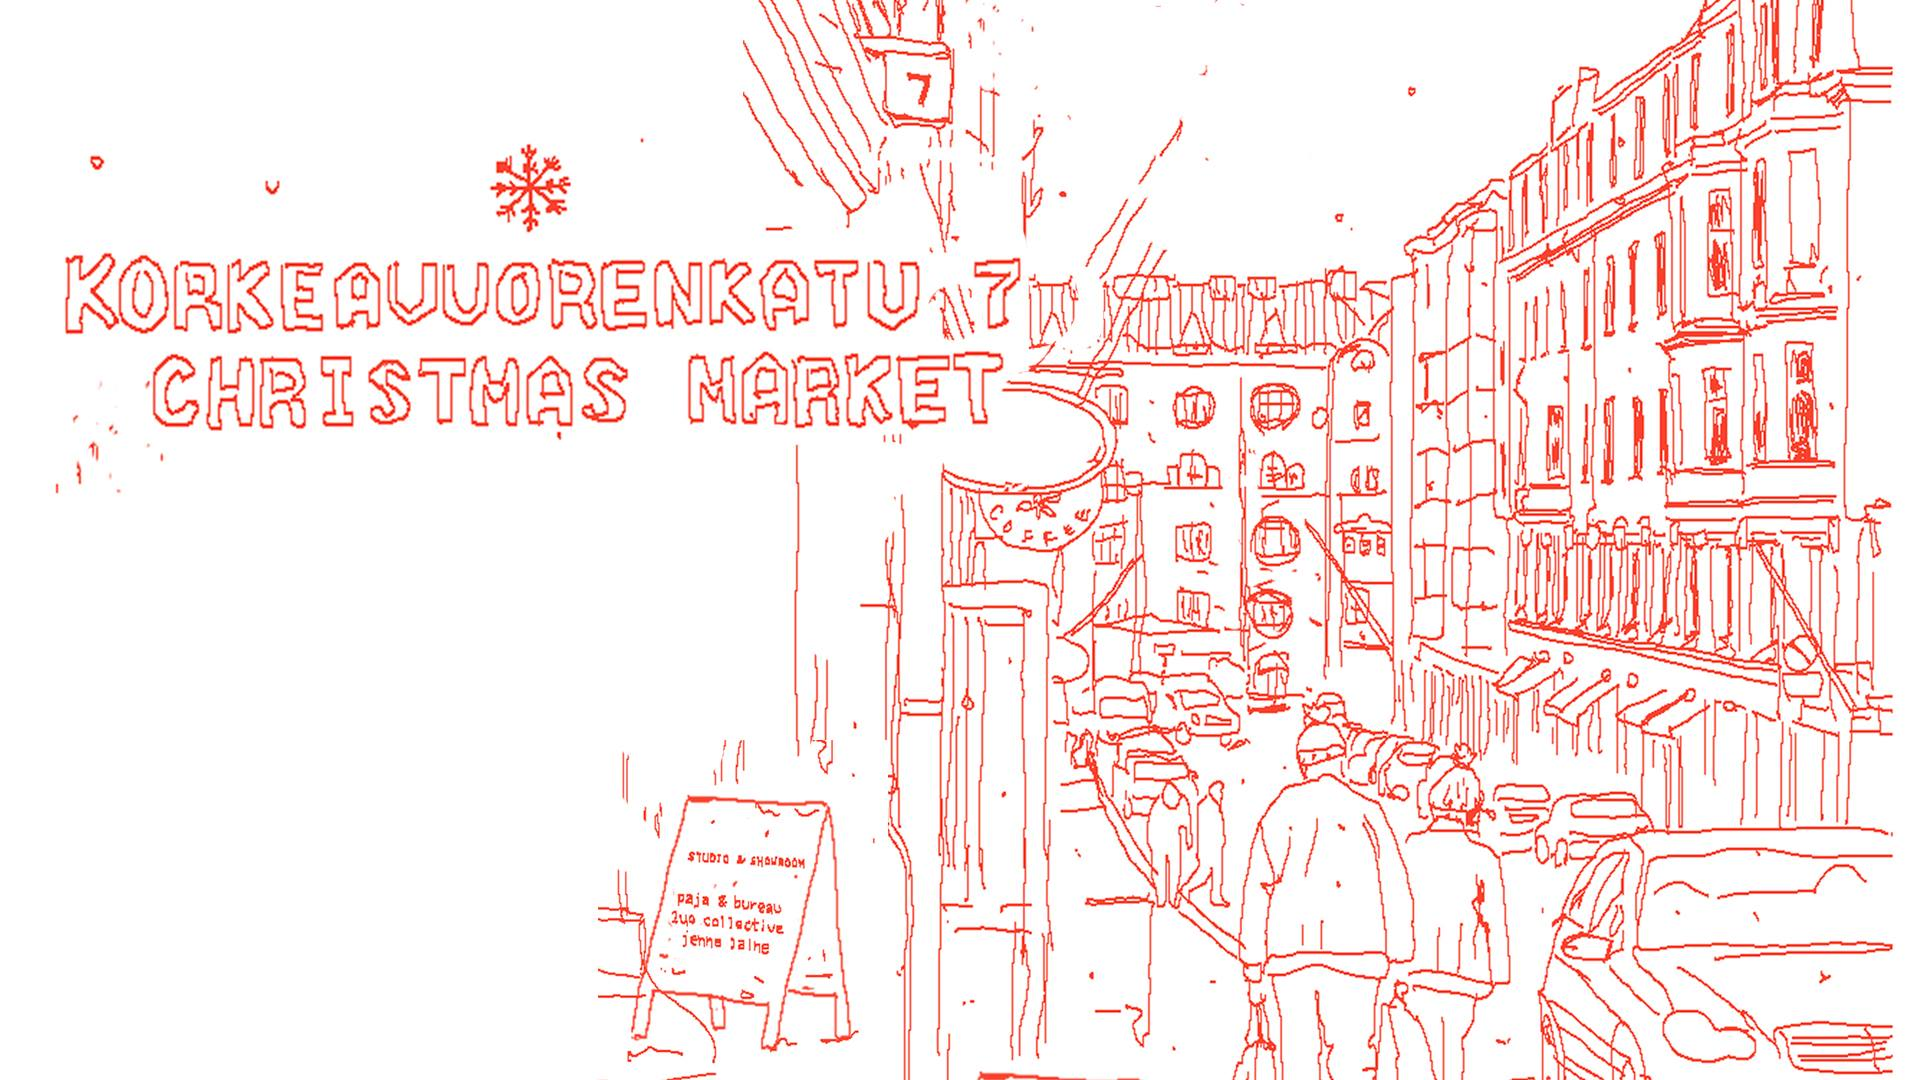 Welcome to the Korkeavuorenkatu 7 Christmas Market. The market expands this year to a two-day event so welcome on both Saturday and Sunday! 11.00-16.00. Featuring: Paja&Bureau, Annika Cumlander, By Laura Darth, Lillan Helsinki, Ossi Jaala, Lieko Design, Satu Närkki, Kultaseppä Linda Rantanen, Rauhala Koru, Studio Jenna Laine, Anni Pitkäjärvi,  Heidi Aulikki , Ariane Relander, Hanna Särökaari and others. We will release more info on the sellers closer to the dates. Music will be provided by Creat's #eroticlifestyle DJs. Glogg and gingerbread will be served! Entrance through the inner courtyard.  See Facebook event here.